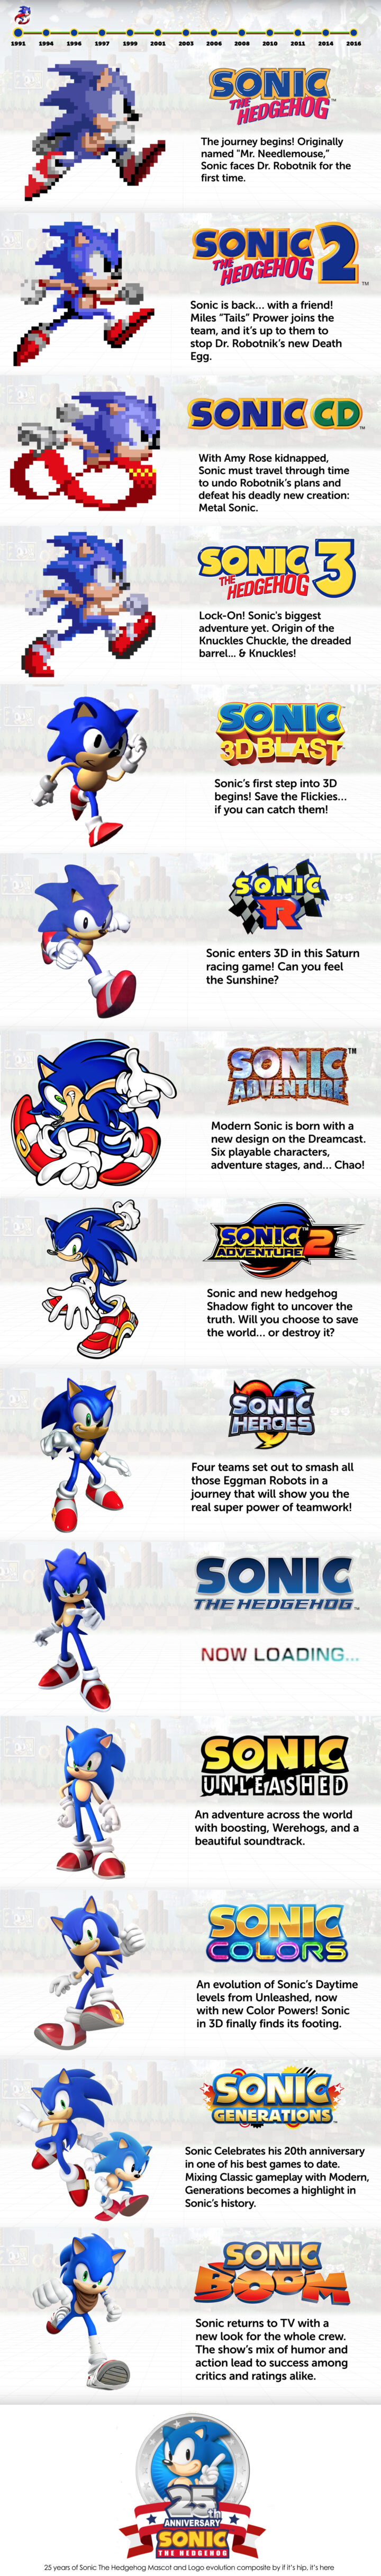 The Evolution of Sonic The Hedgehog Over 25 Years